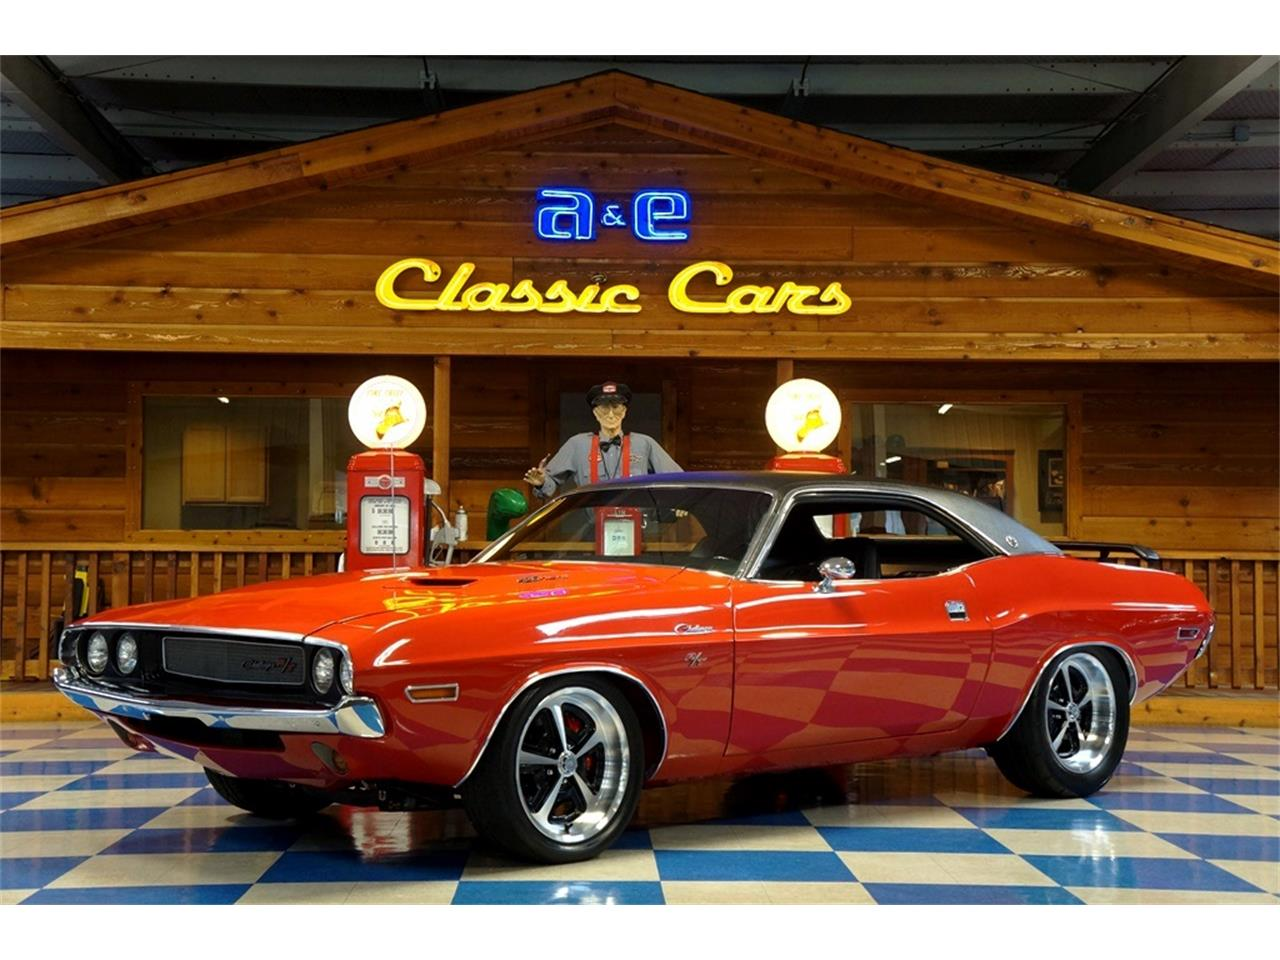 for sale 1970 dodge challenger in new braunfels, texas cars - new braunfels, tx at geebo